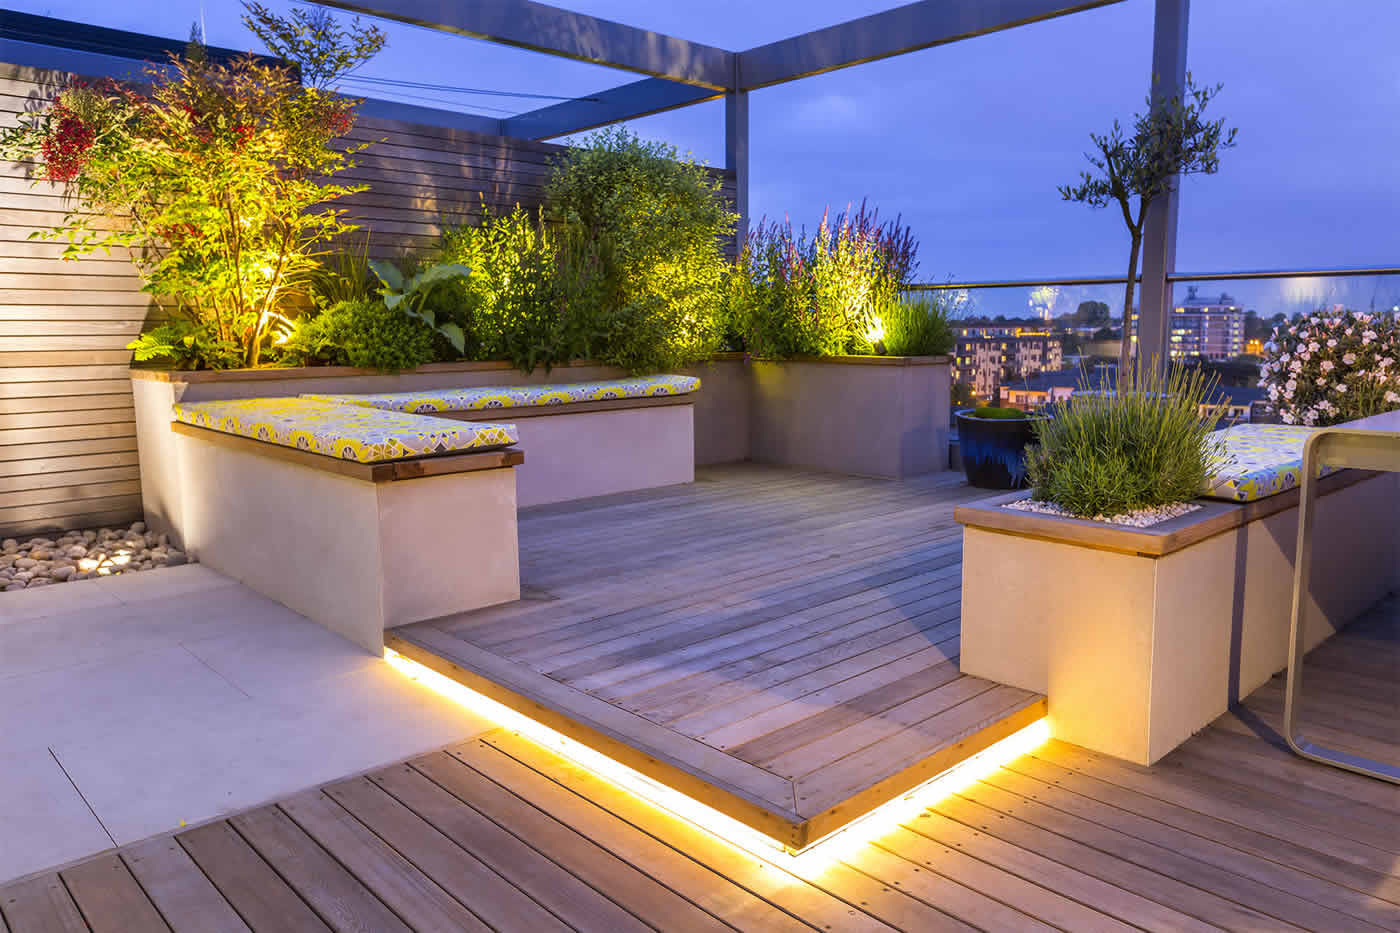 Roof Terrace Design Kings Cross10 - Download Terrace Roof Design For Small House PNG